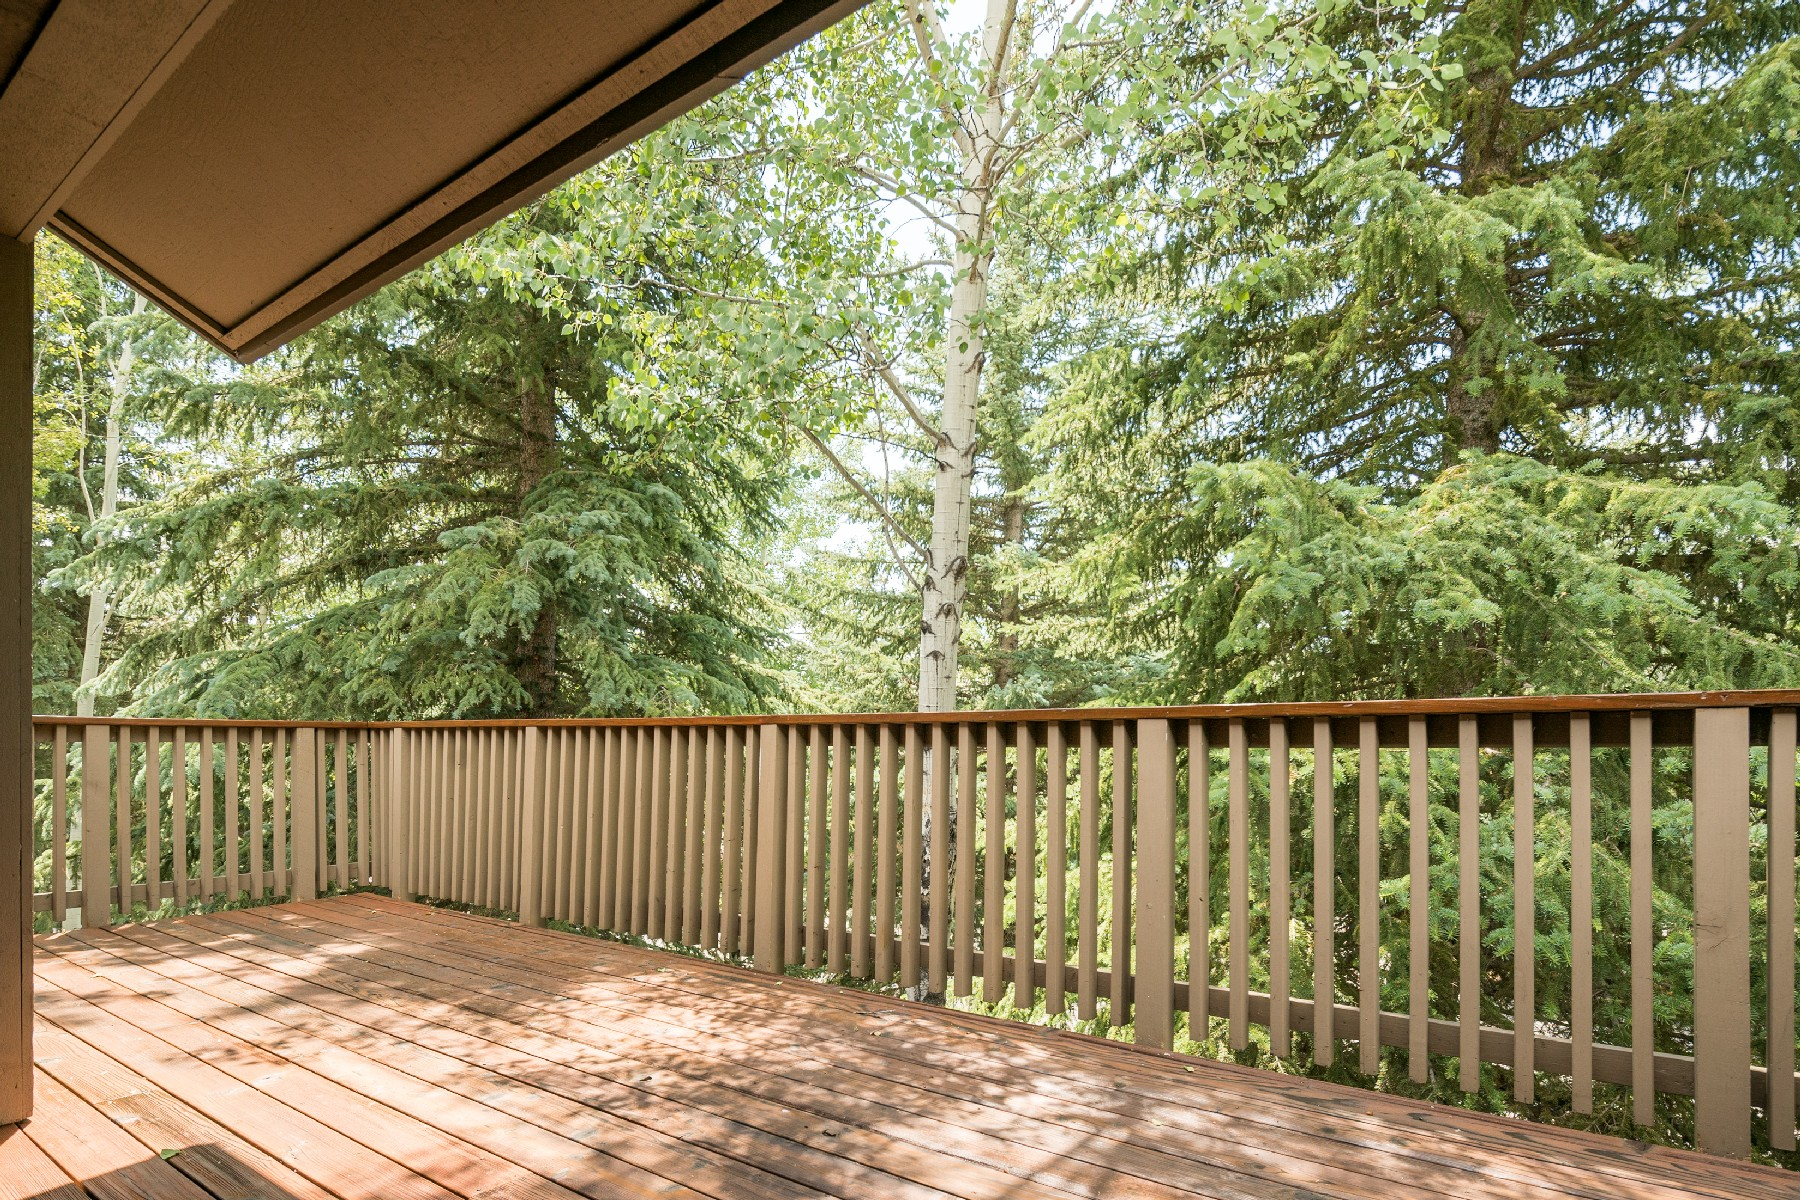 Additional photo for property listing at Best Deck At The Bluff 4125 Bluff Dr 太阳谷, 爱达荷州 83353 美国